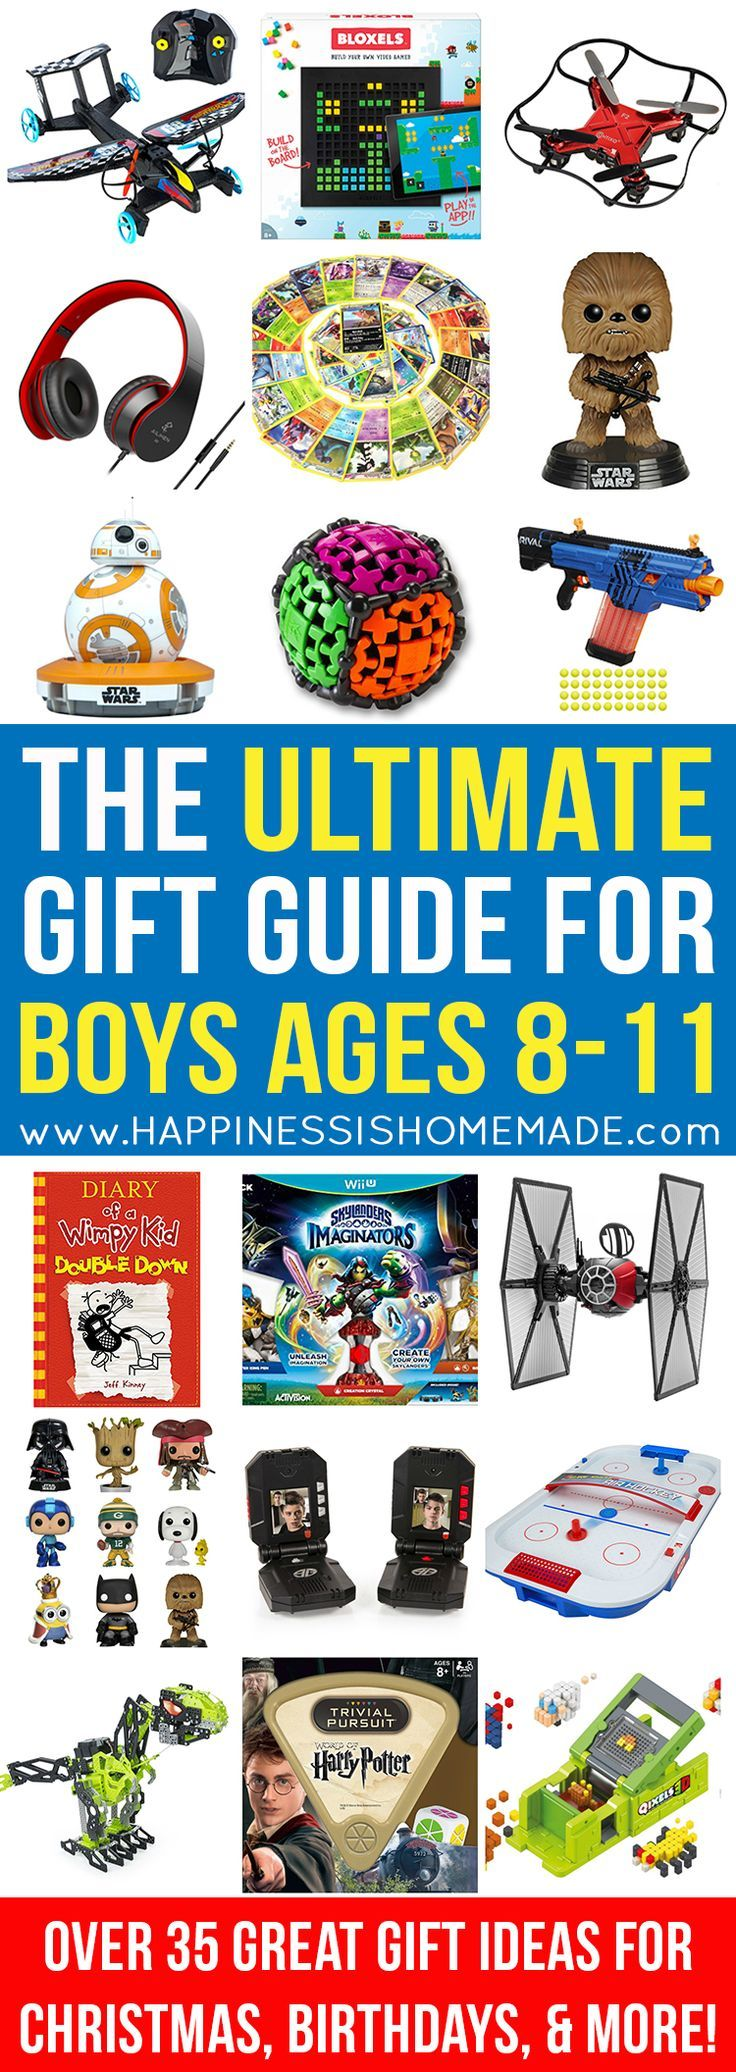 The Best Gift Ideas for Boys Ages 8-11 - Looking for gift ideas for an 8, 9, 10, or 11-year-old boy? Look no further! Only the very best of the best present ideas are included in this ULTIMATE gift guide for tween boys – perfect for birthdays, Christmas, and holidays!